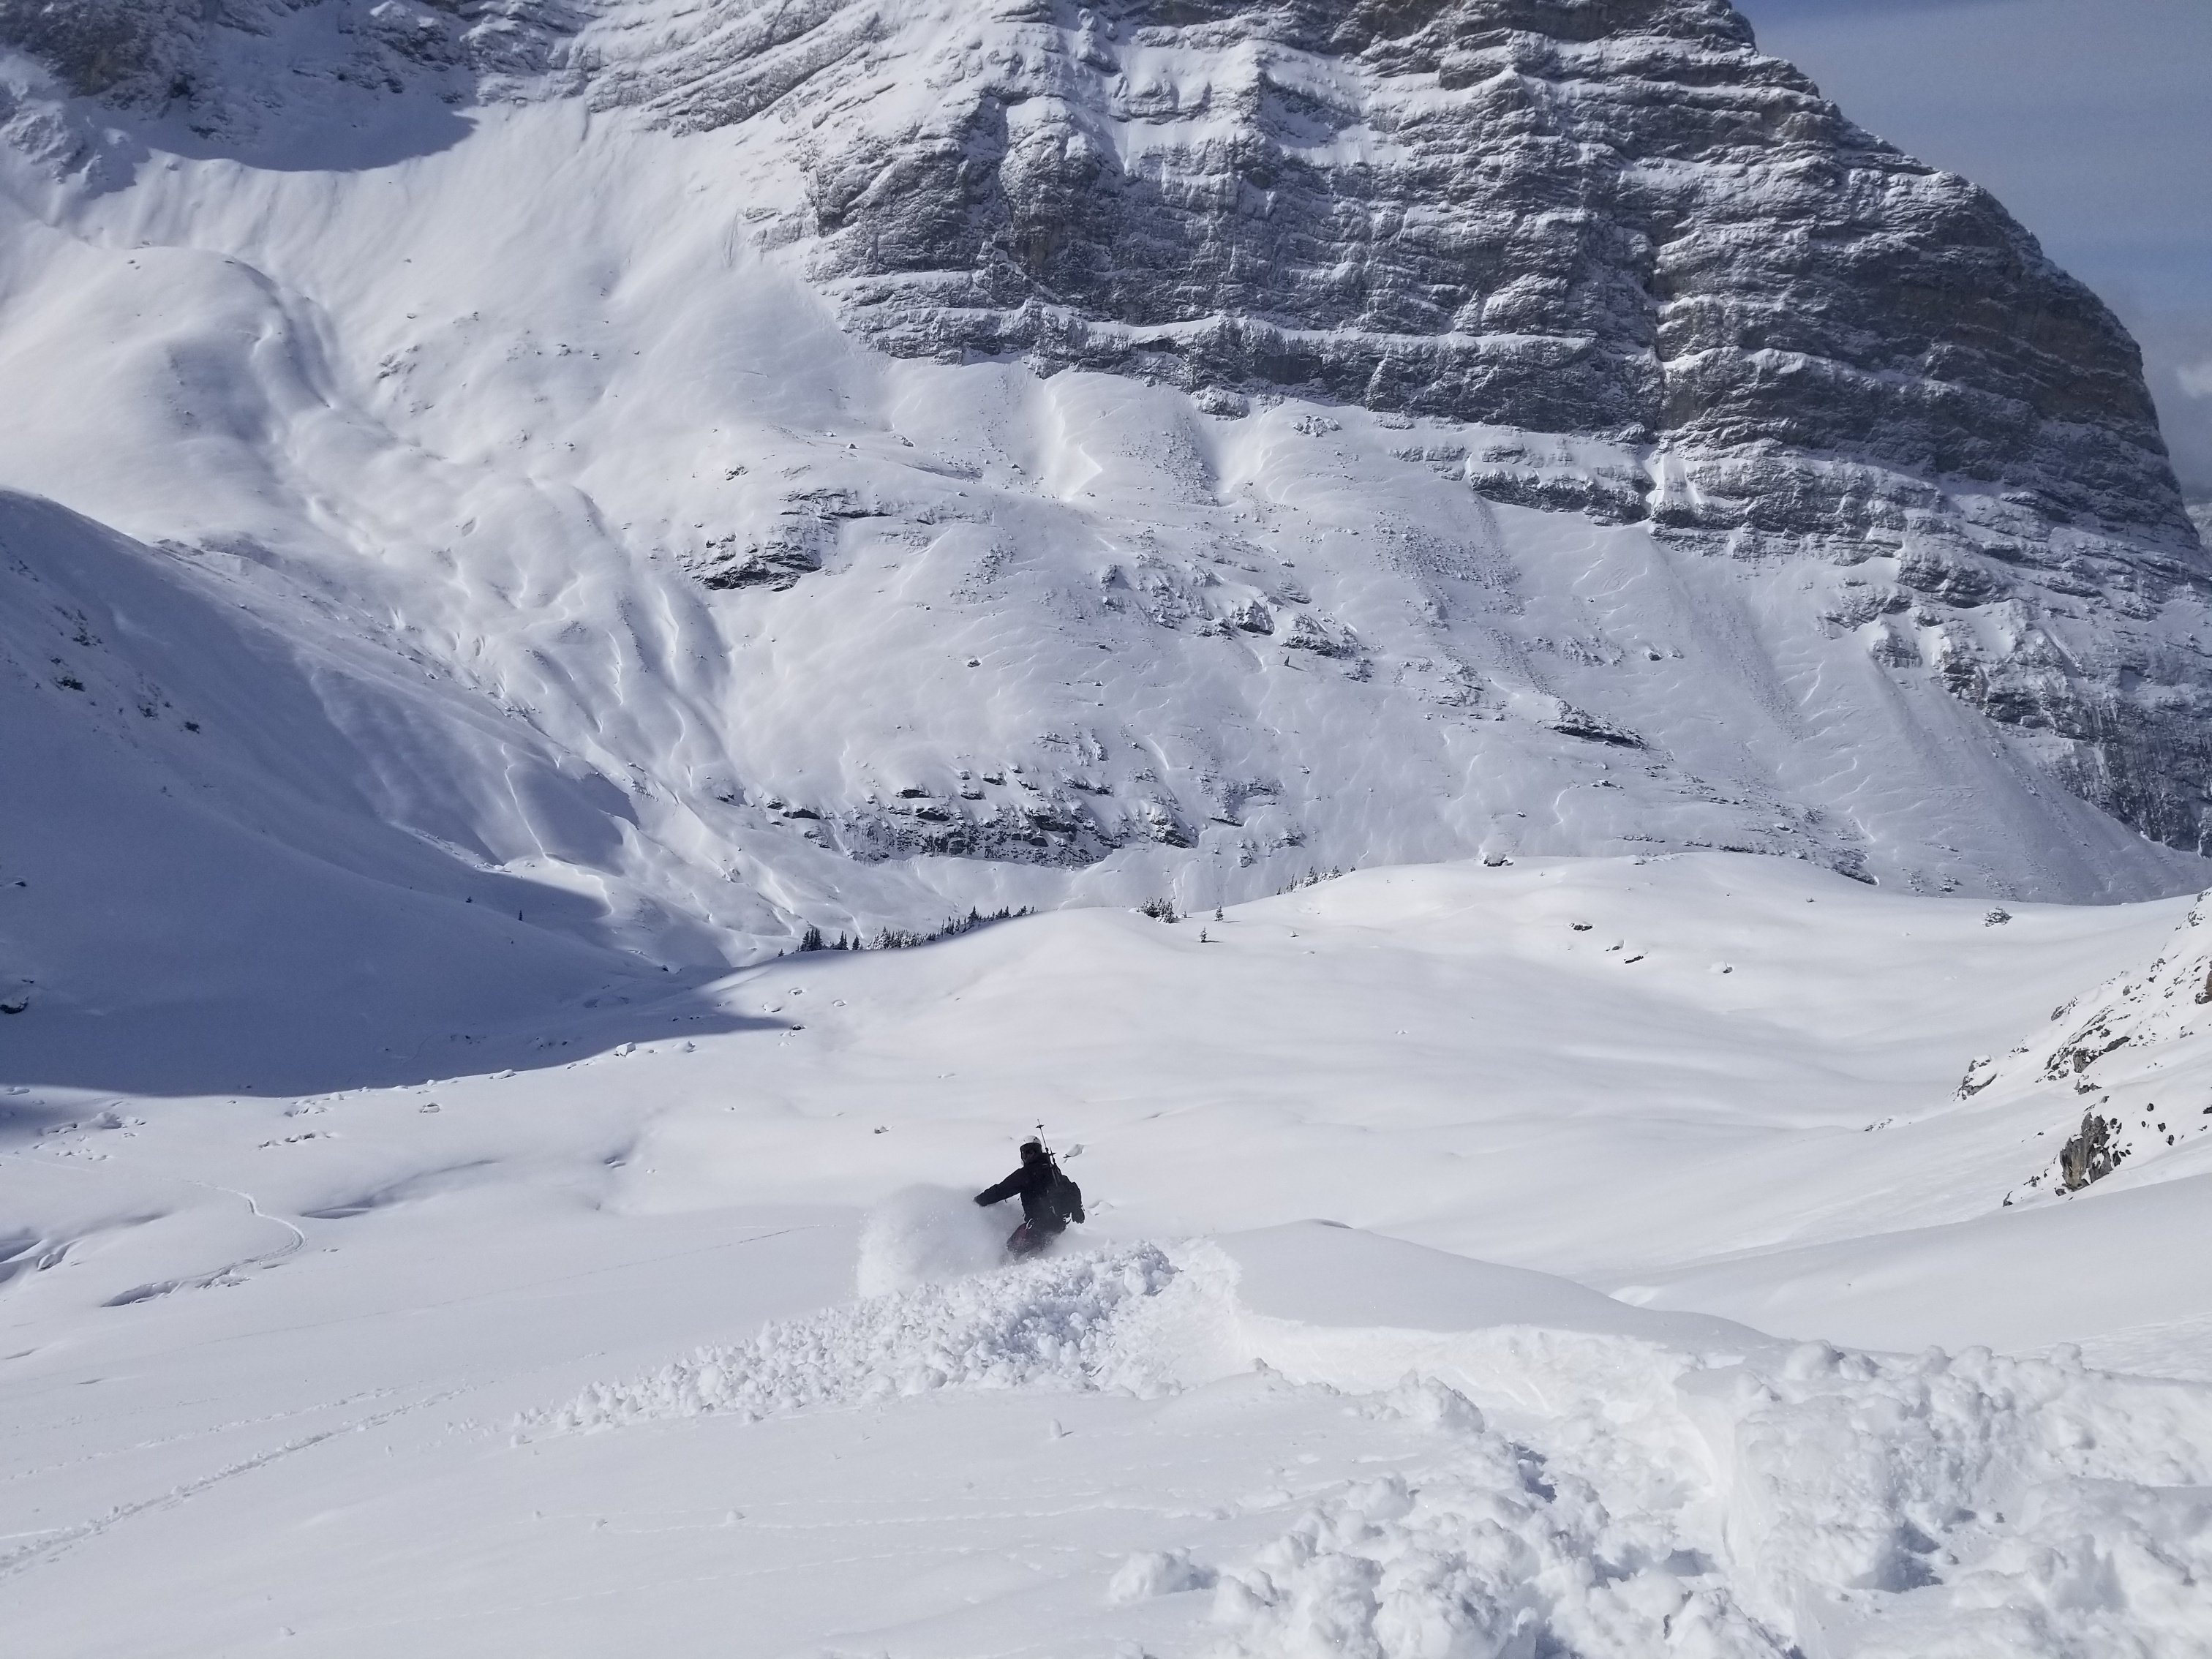 Splitboard HQ - Monday Funday - A surprise start to the winter!